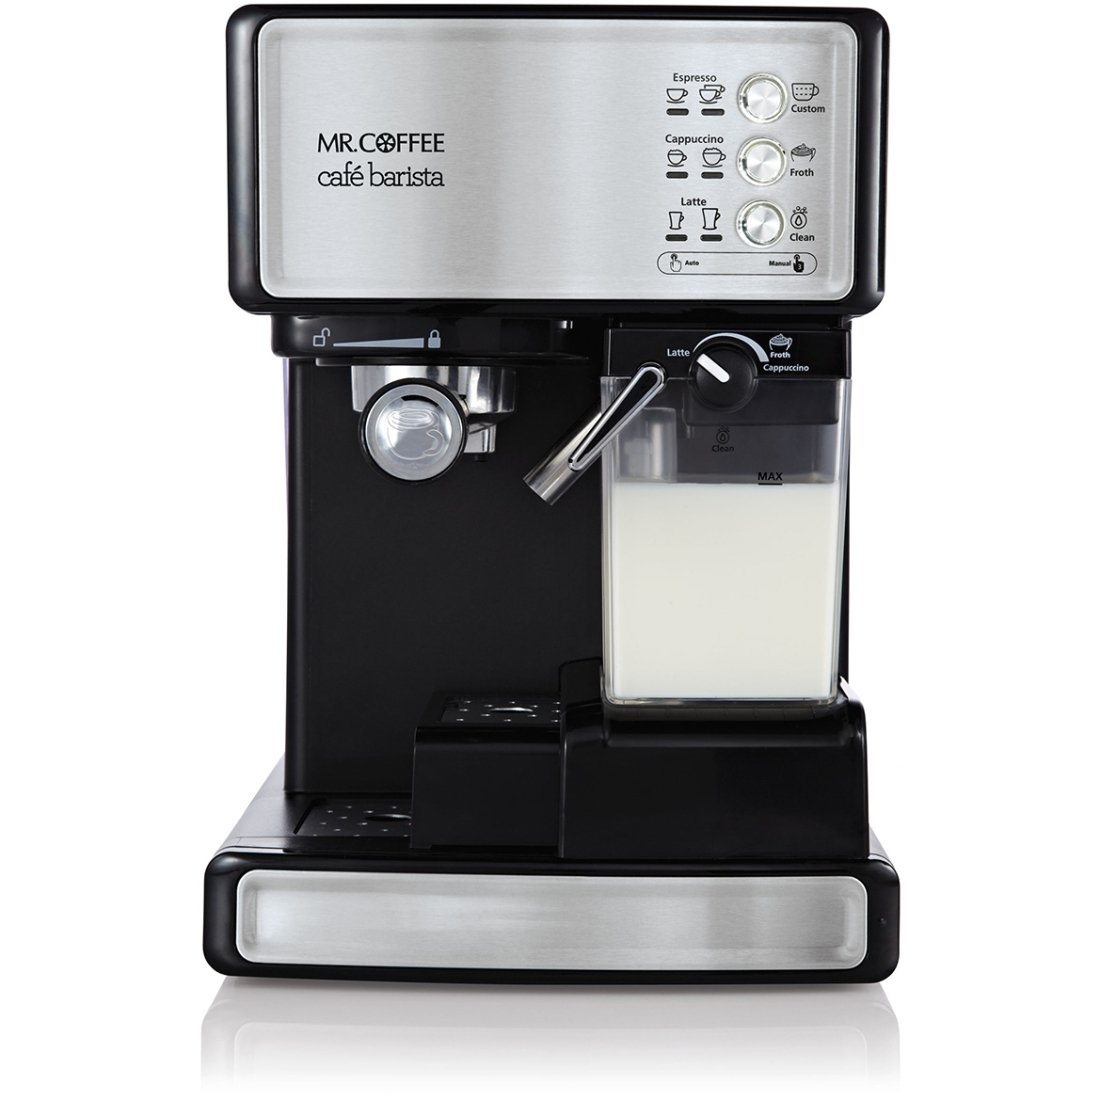 Mr Coffee Caf Barista Bvmc Ecmp1000 Espresso Programmable15 Bar Black Rb